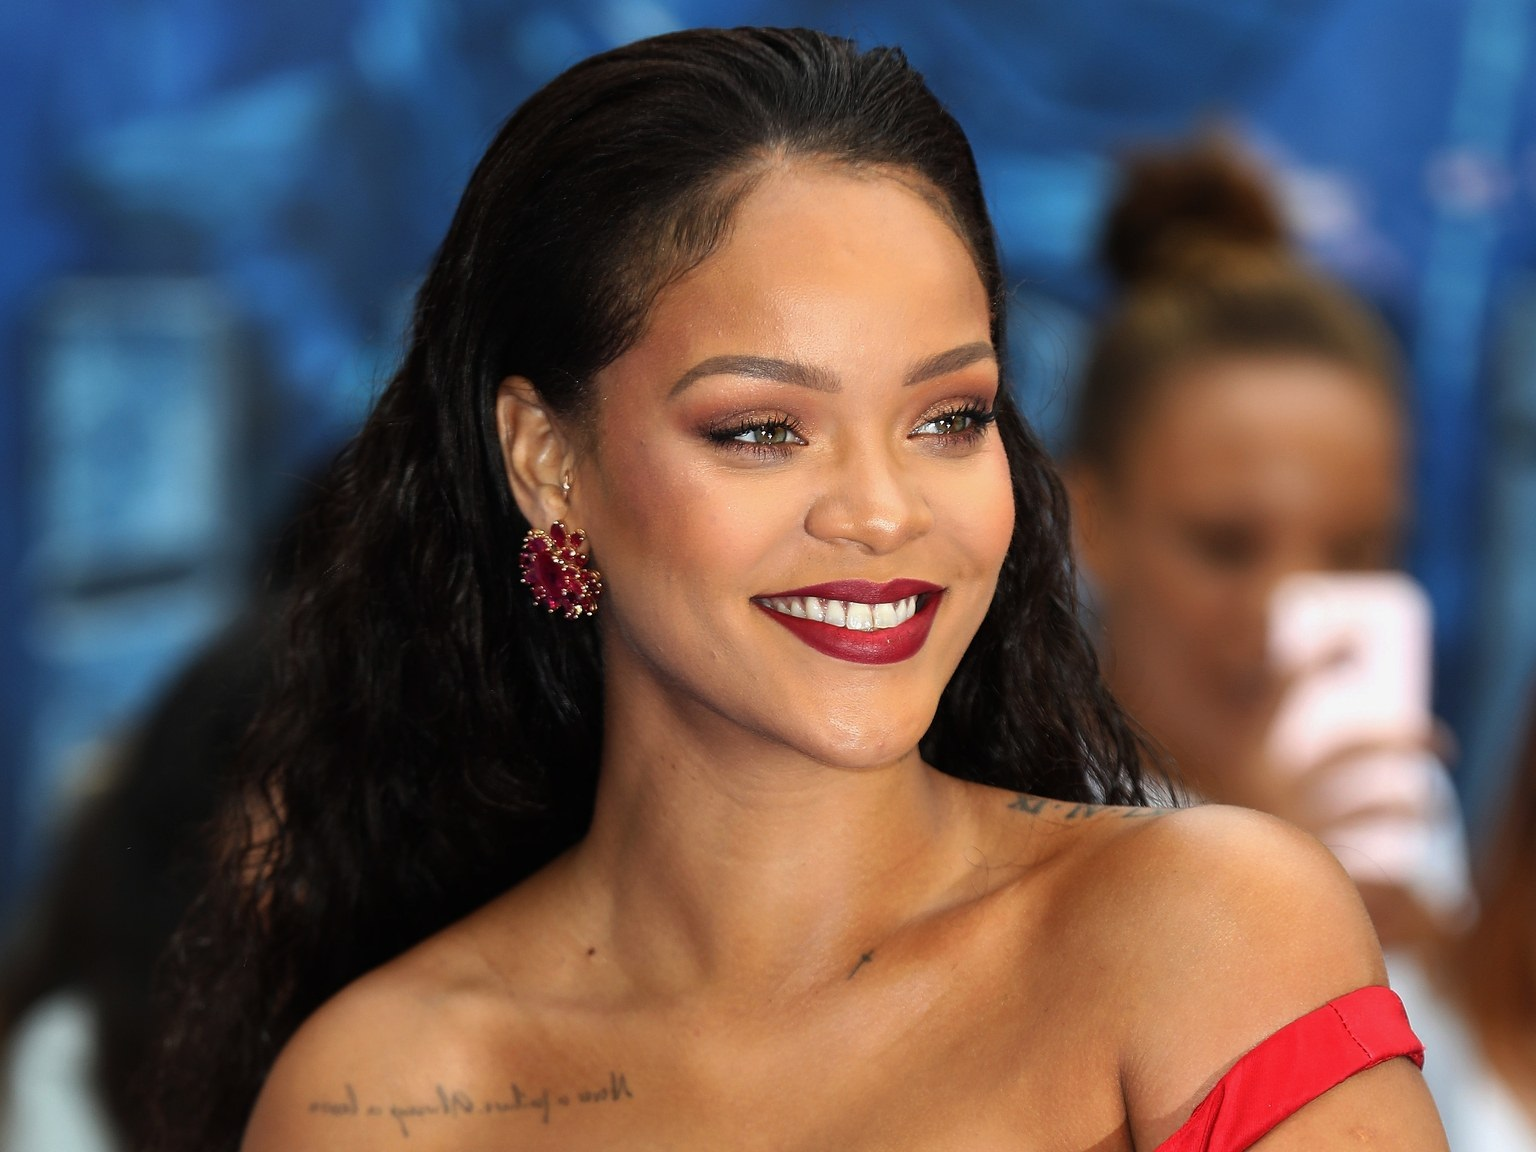 745aca7f2c2da Rihanna's Tattoos - Celebrities tattoos - Tattoo Examples